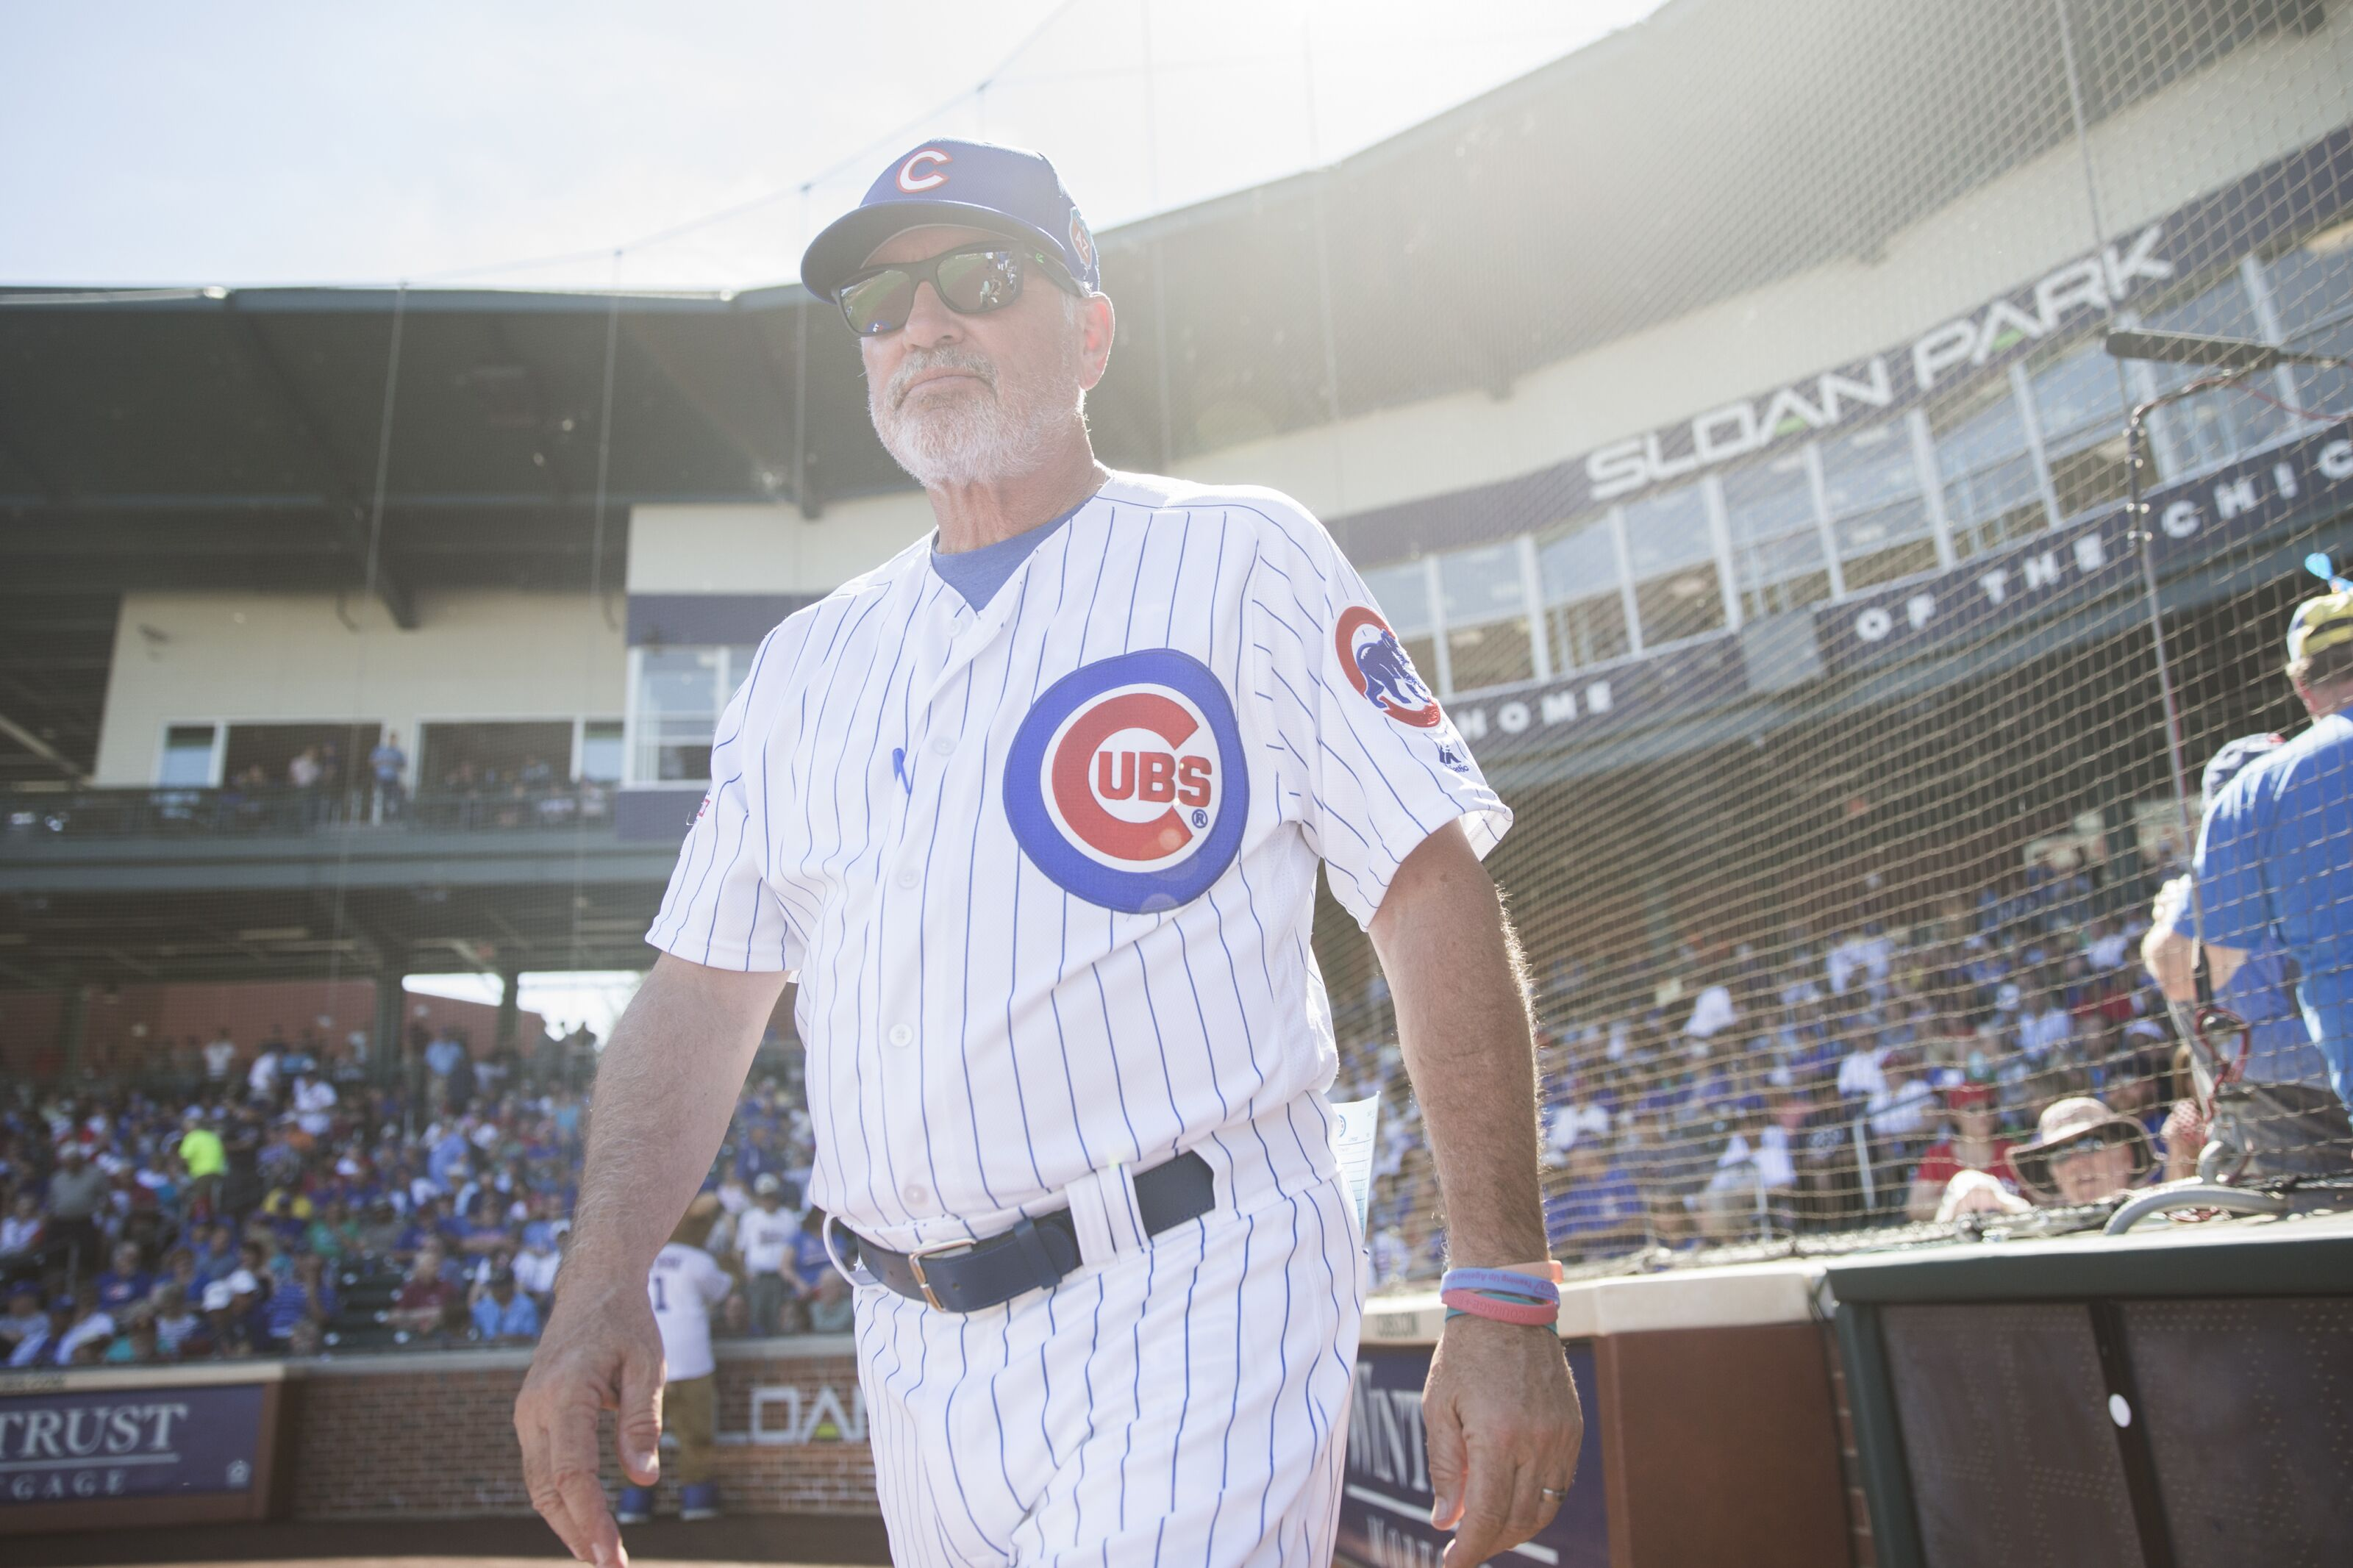 Who will win a title first, Joe Maddon's Angels or Dave Roberts' Dodgers?